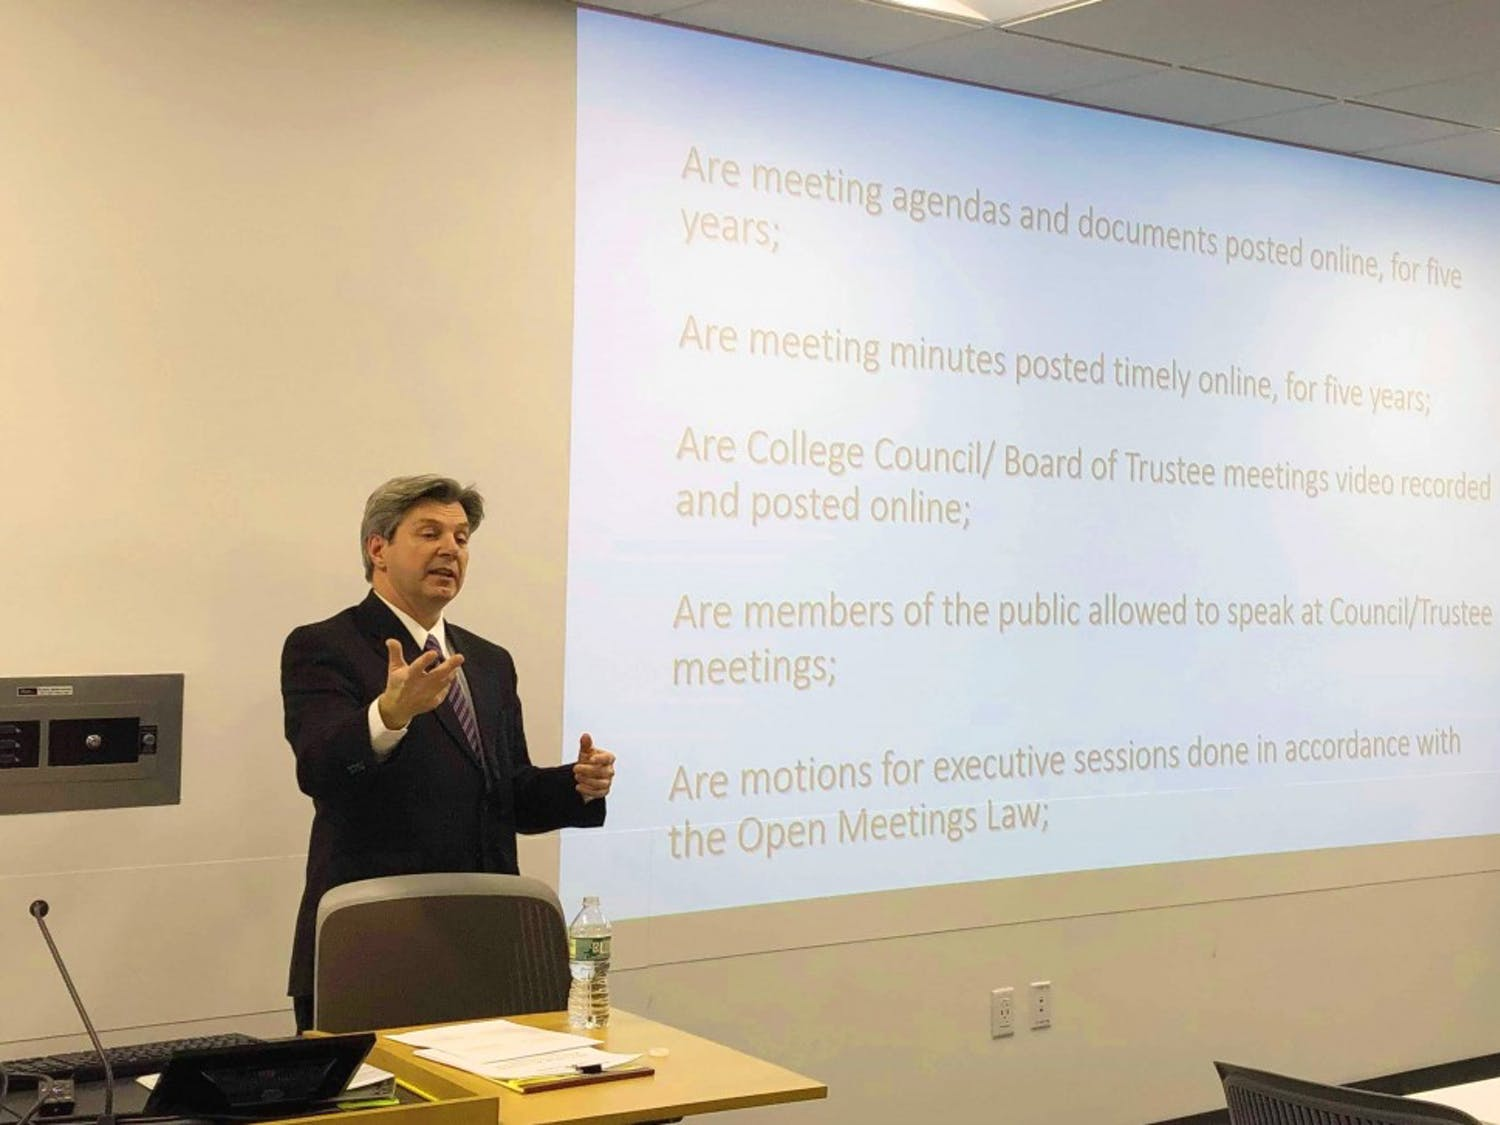 Local attorney Paul Wolf discussed open governance and transparency at UB on Monday.